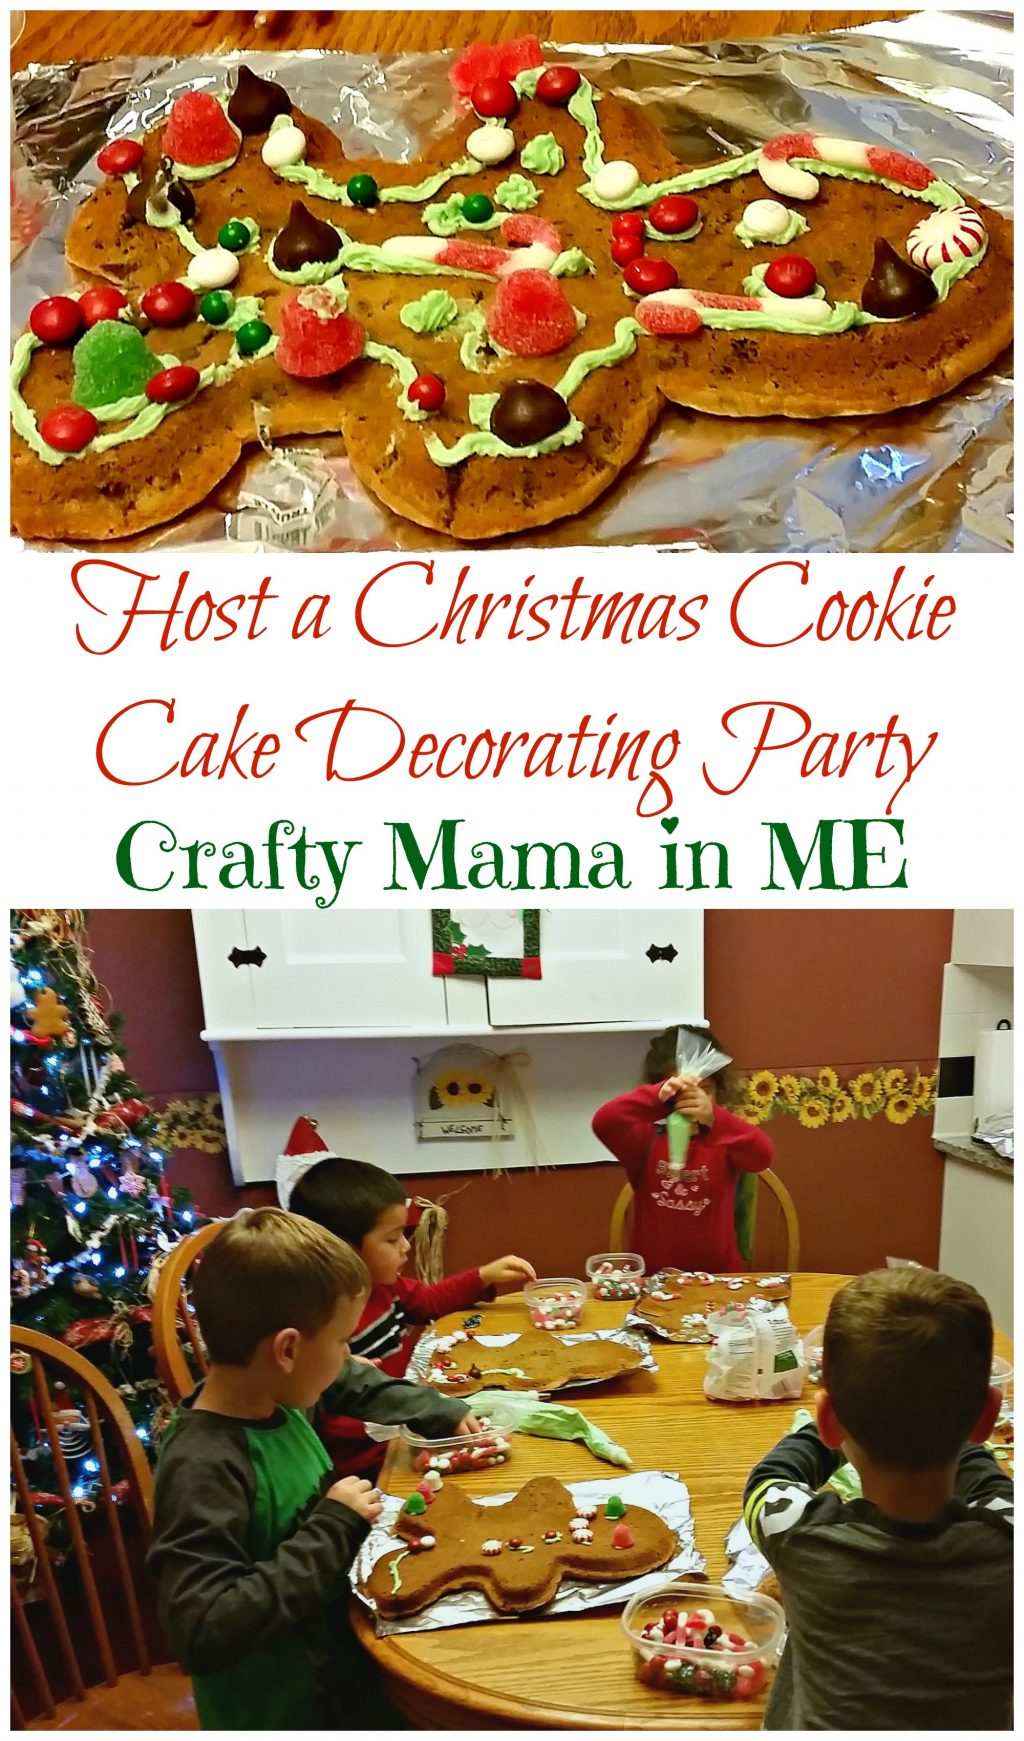 How to Host a Christmas Cookie Cake Decorating Party